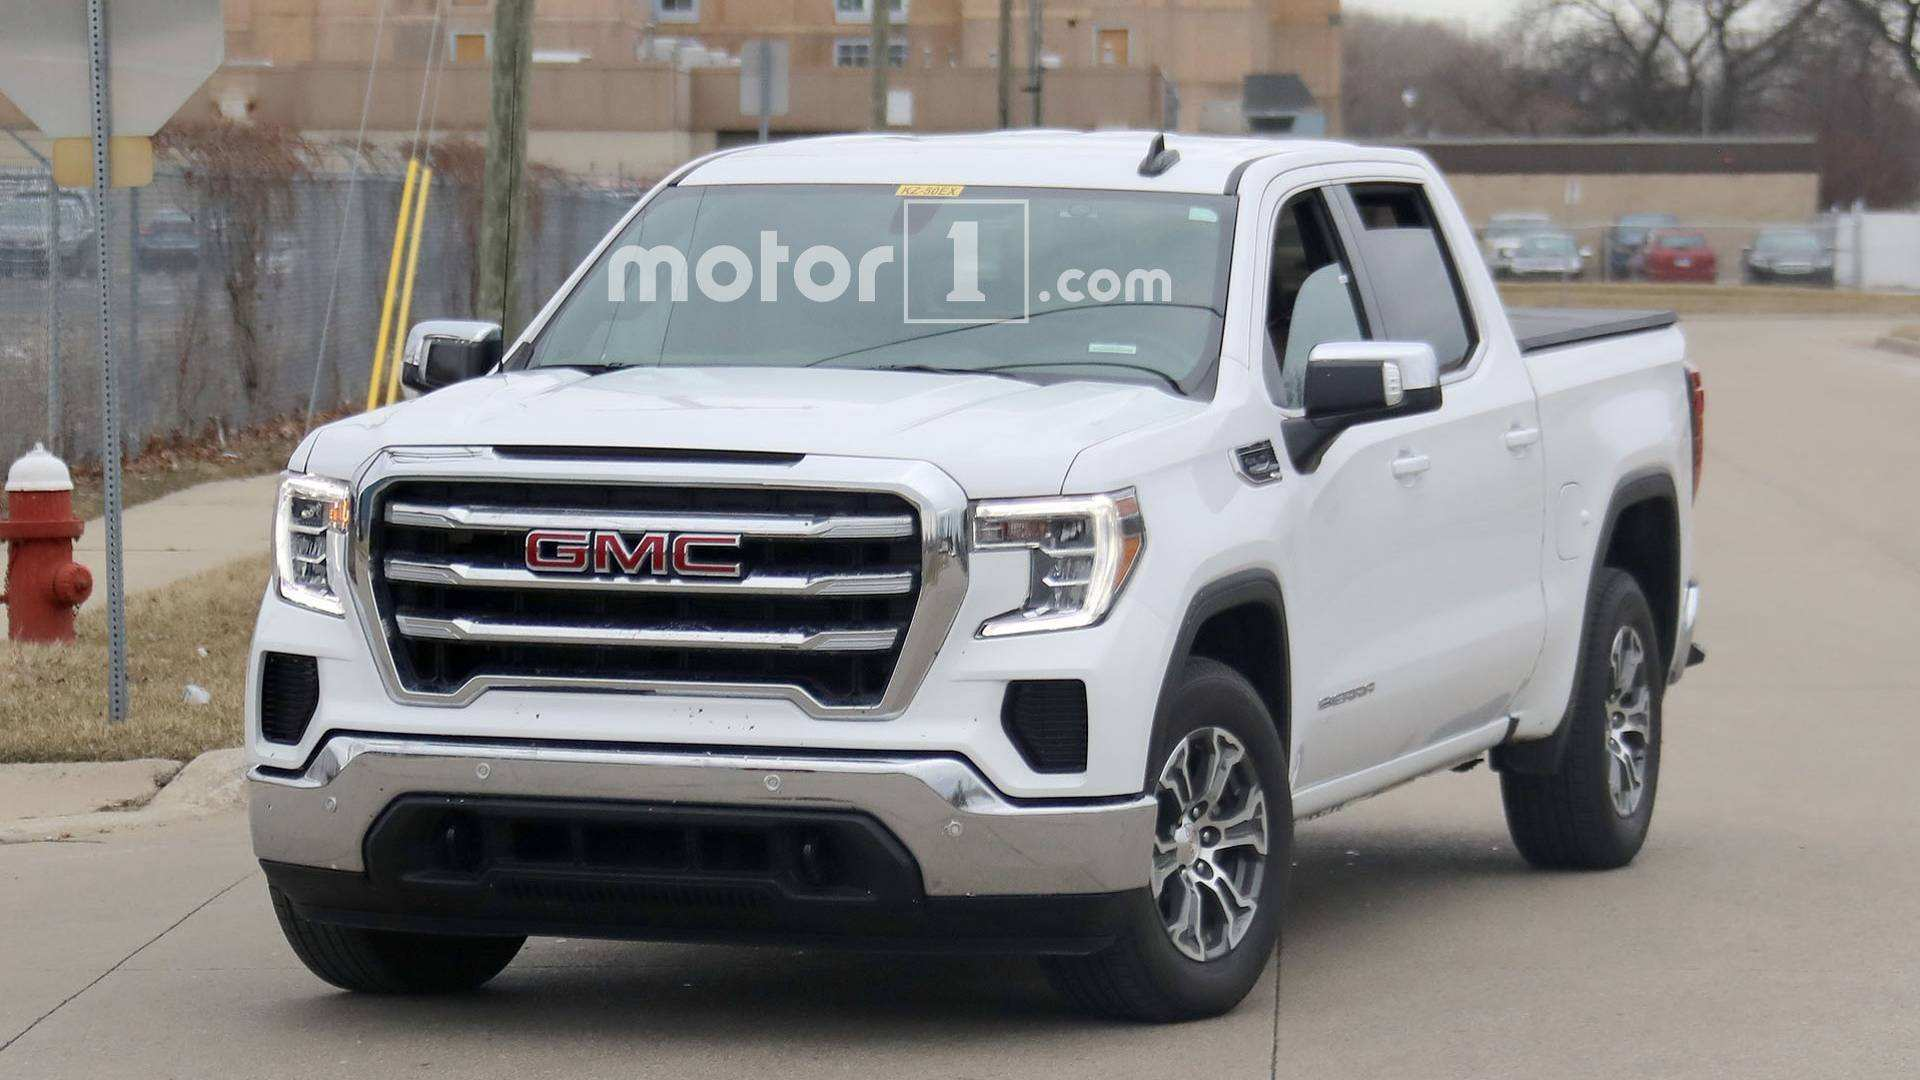 91 Great 2019 Gmc Truck Engine by 2019 Gmc Truck